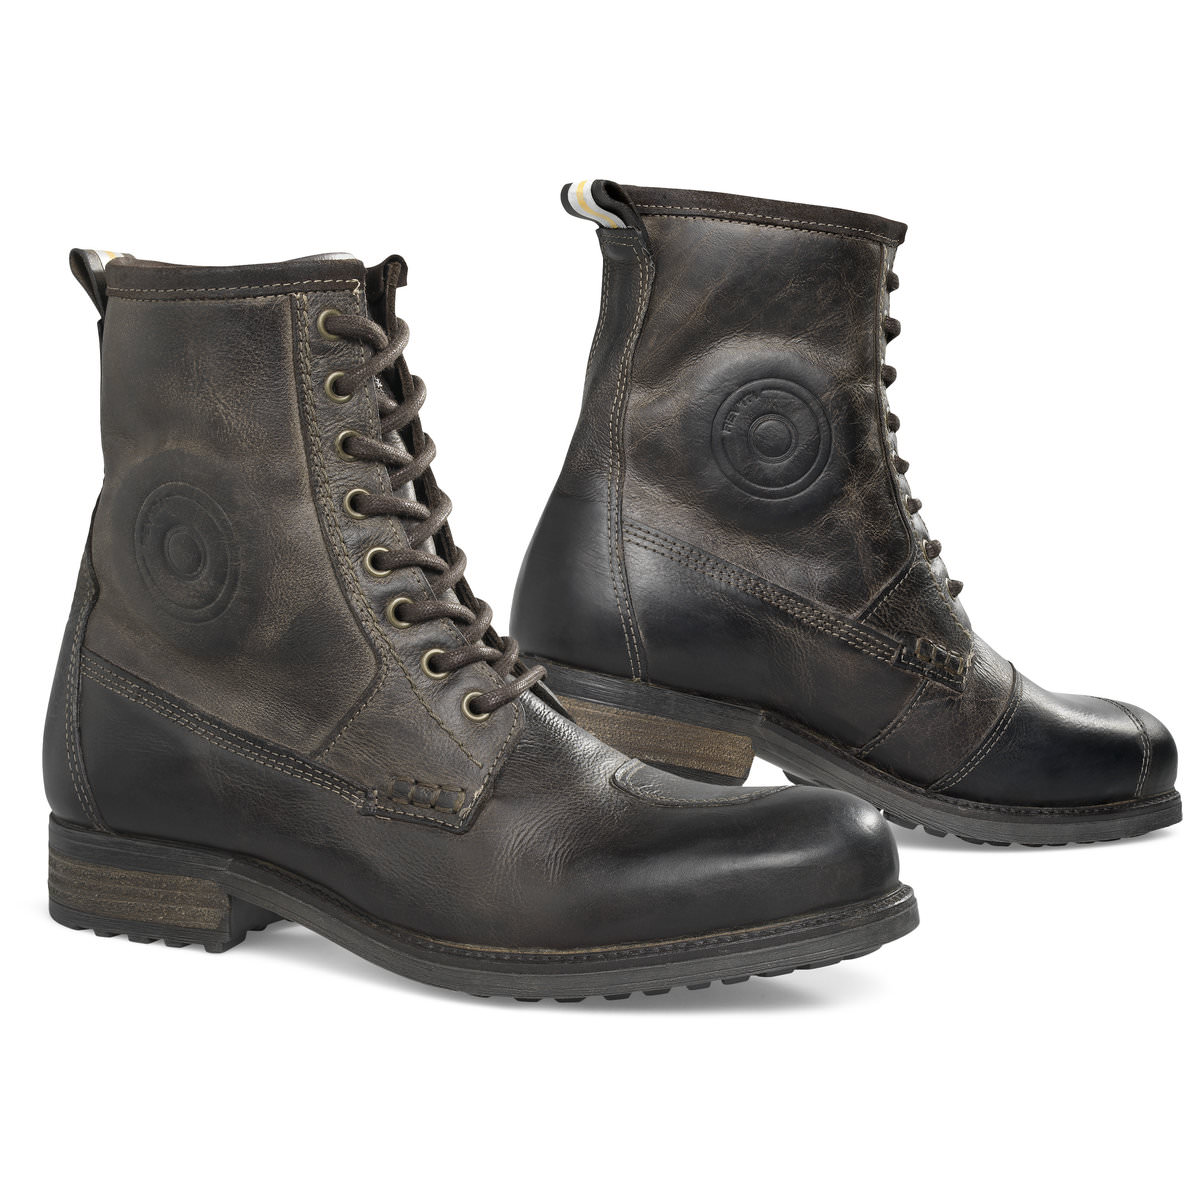 REV'IT! Rodeo Boots 1